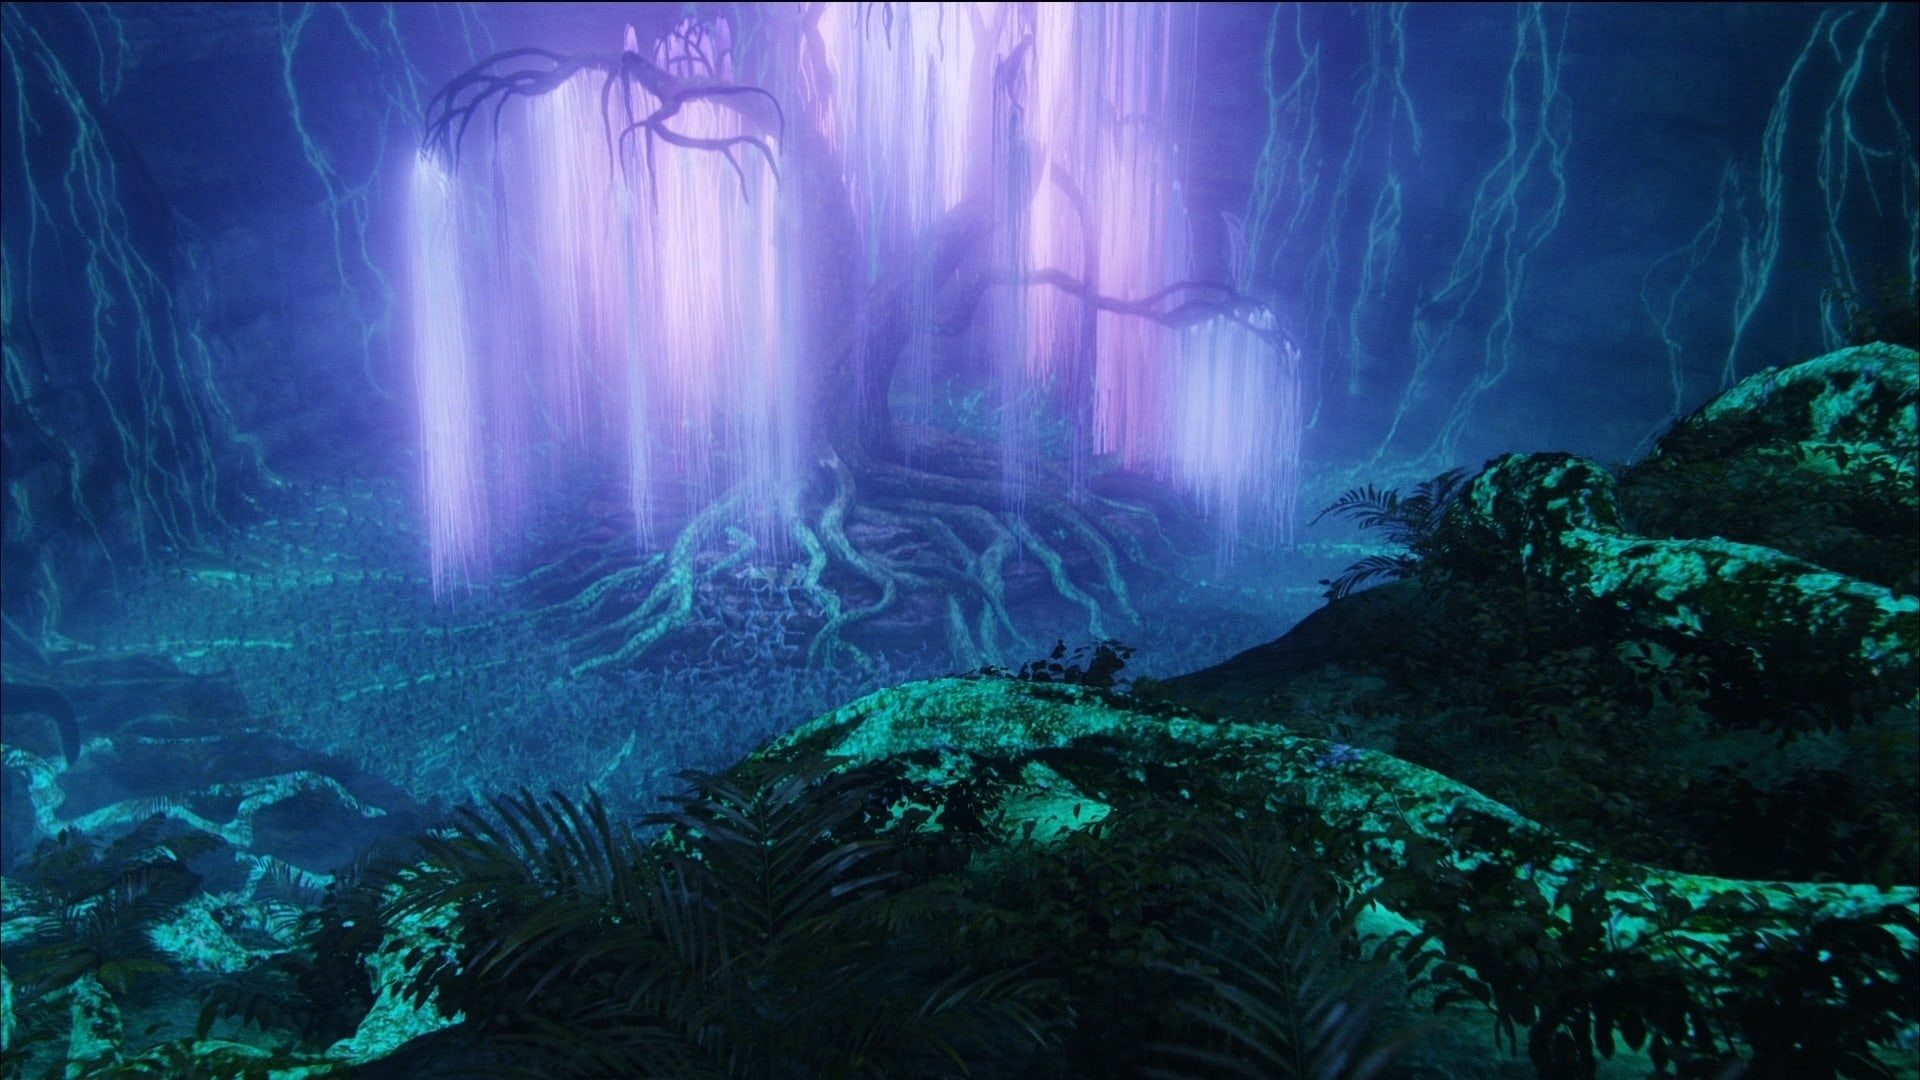 The Willow Glade, at night, the Tree of Souls shines brightly.